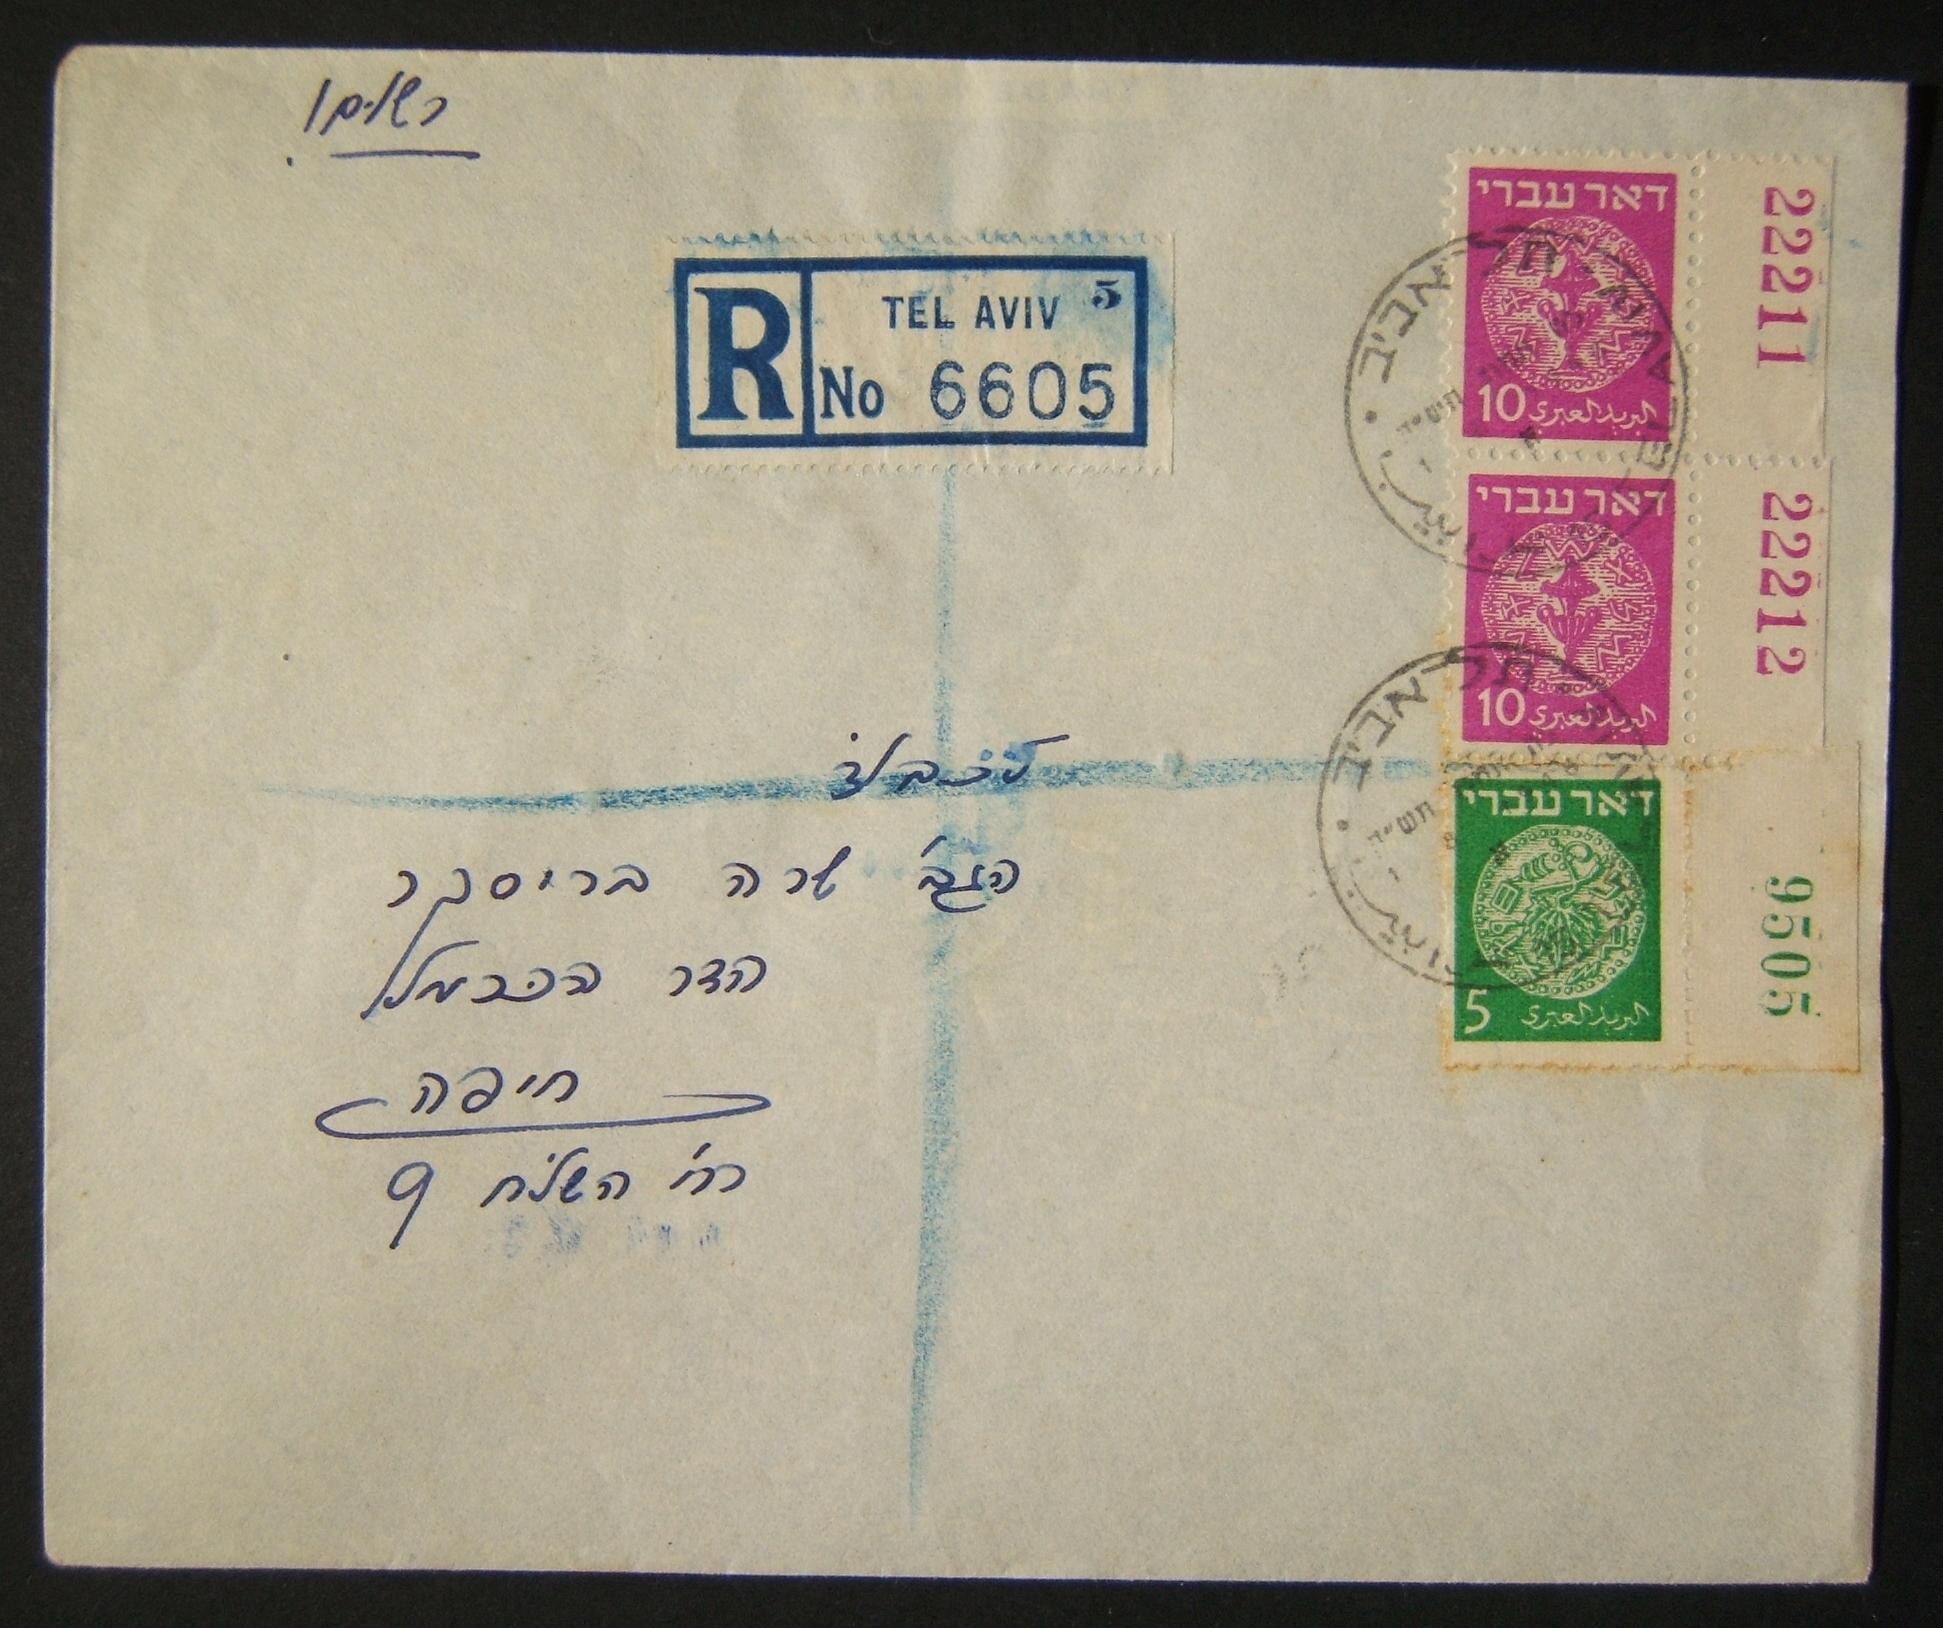 Doar Ivri PO's, rates & routes: 1-8-1948 registered cover ex TLV (return addressed Sde Yaakov, in northern Israel) to HAIFA franked 25m at the DO-1 rate (10m letter + 15m registrat